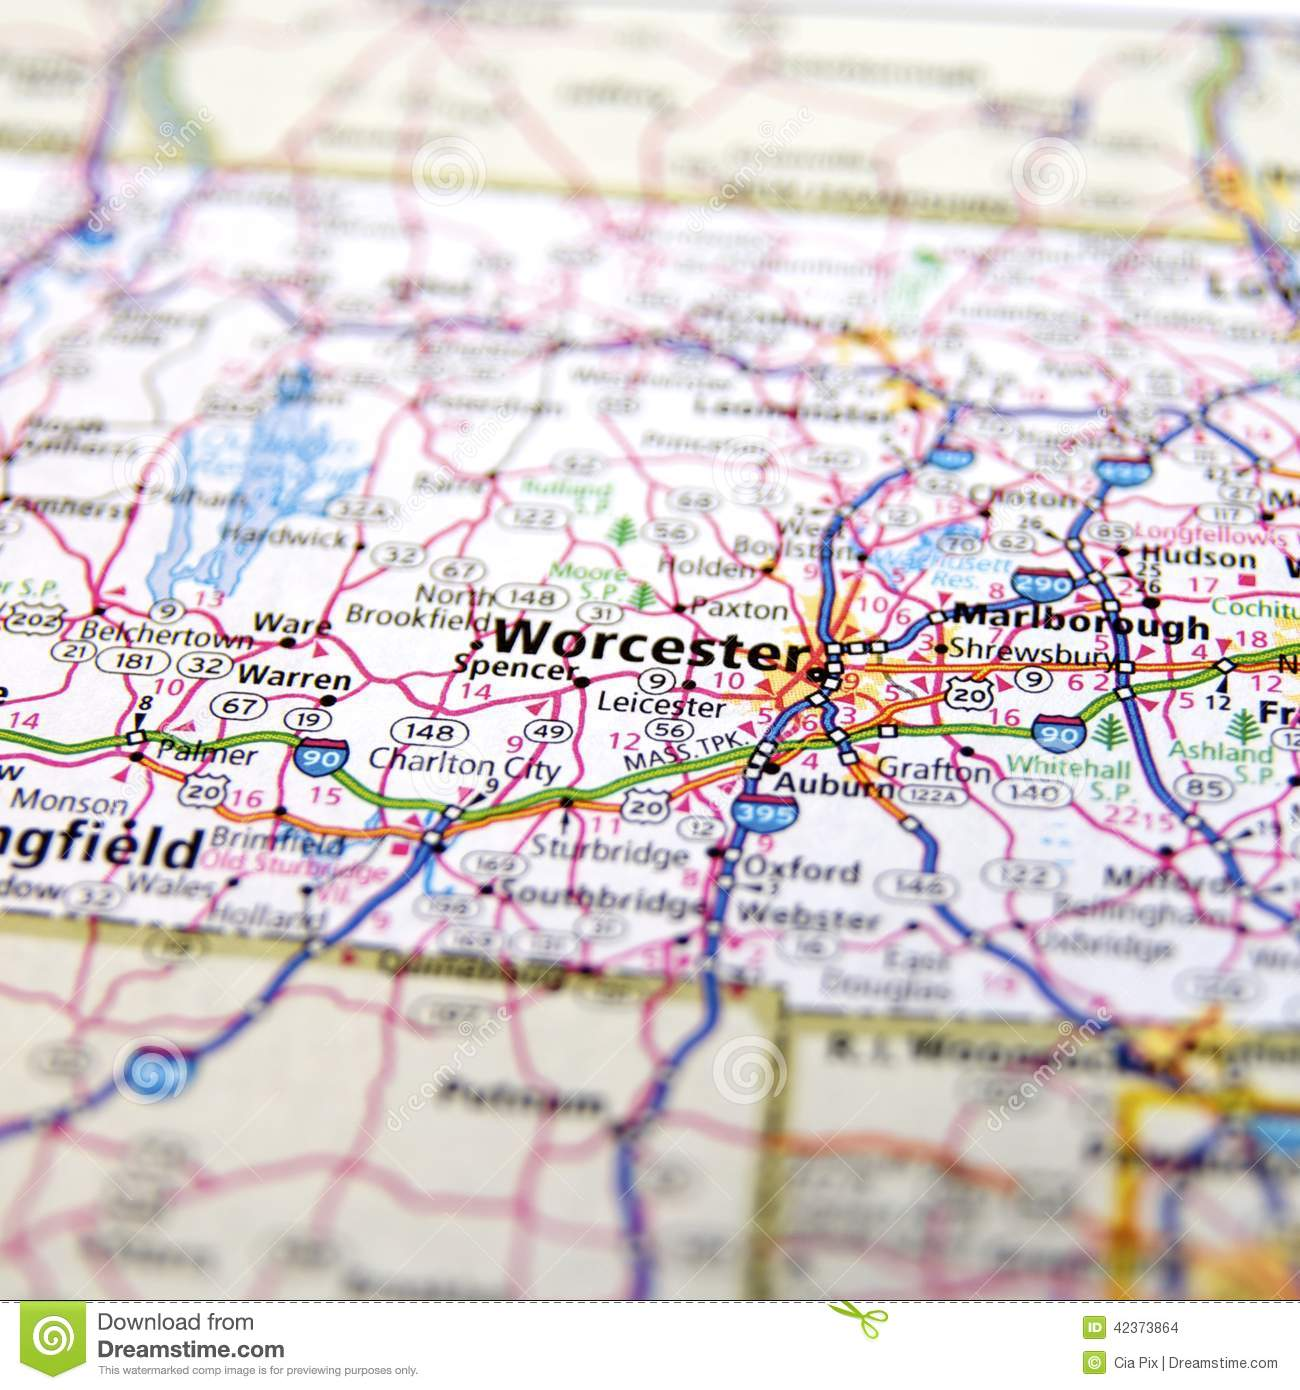 Highway Map Of Massachusetts USA Stock Photo Image of hudson